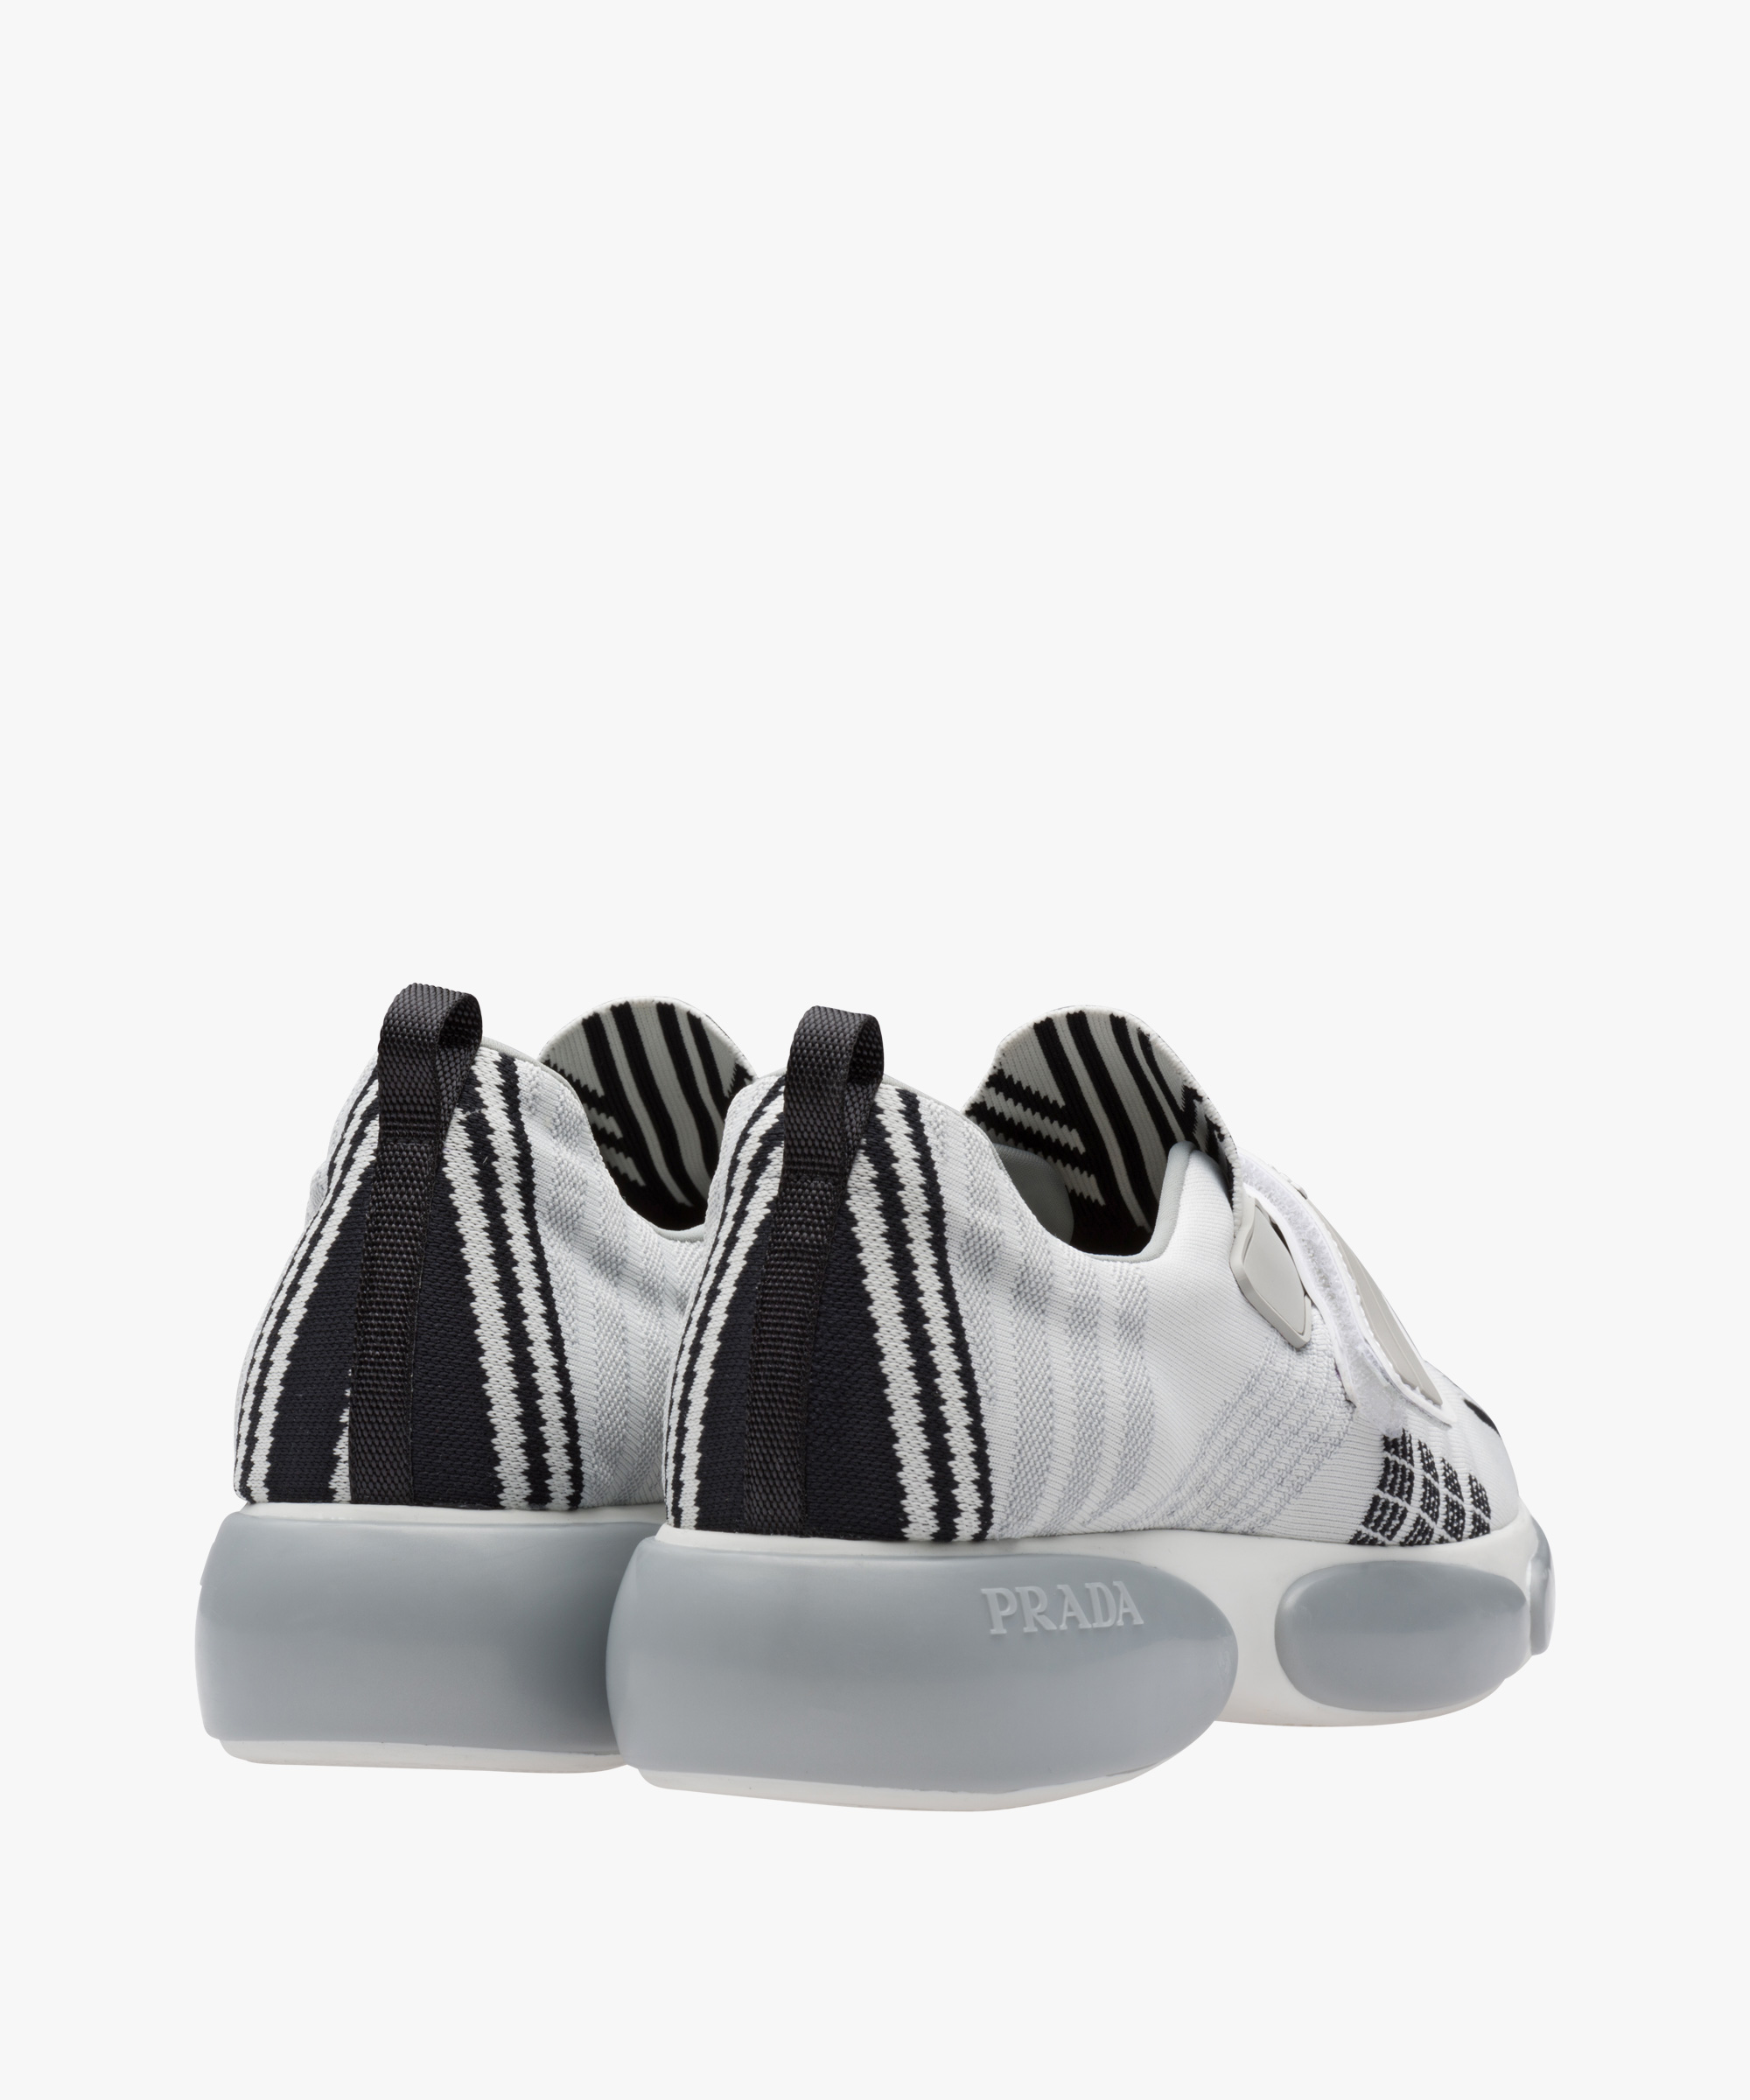 Cloudbust Nylon Slip On SneakersPrada